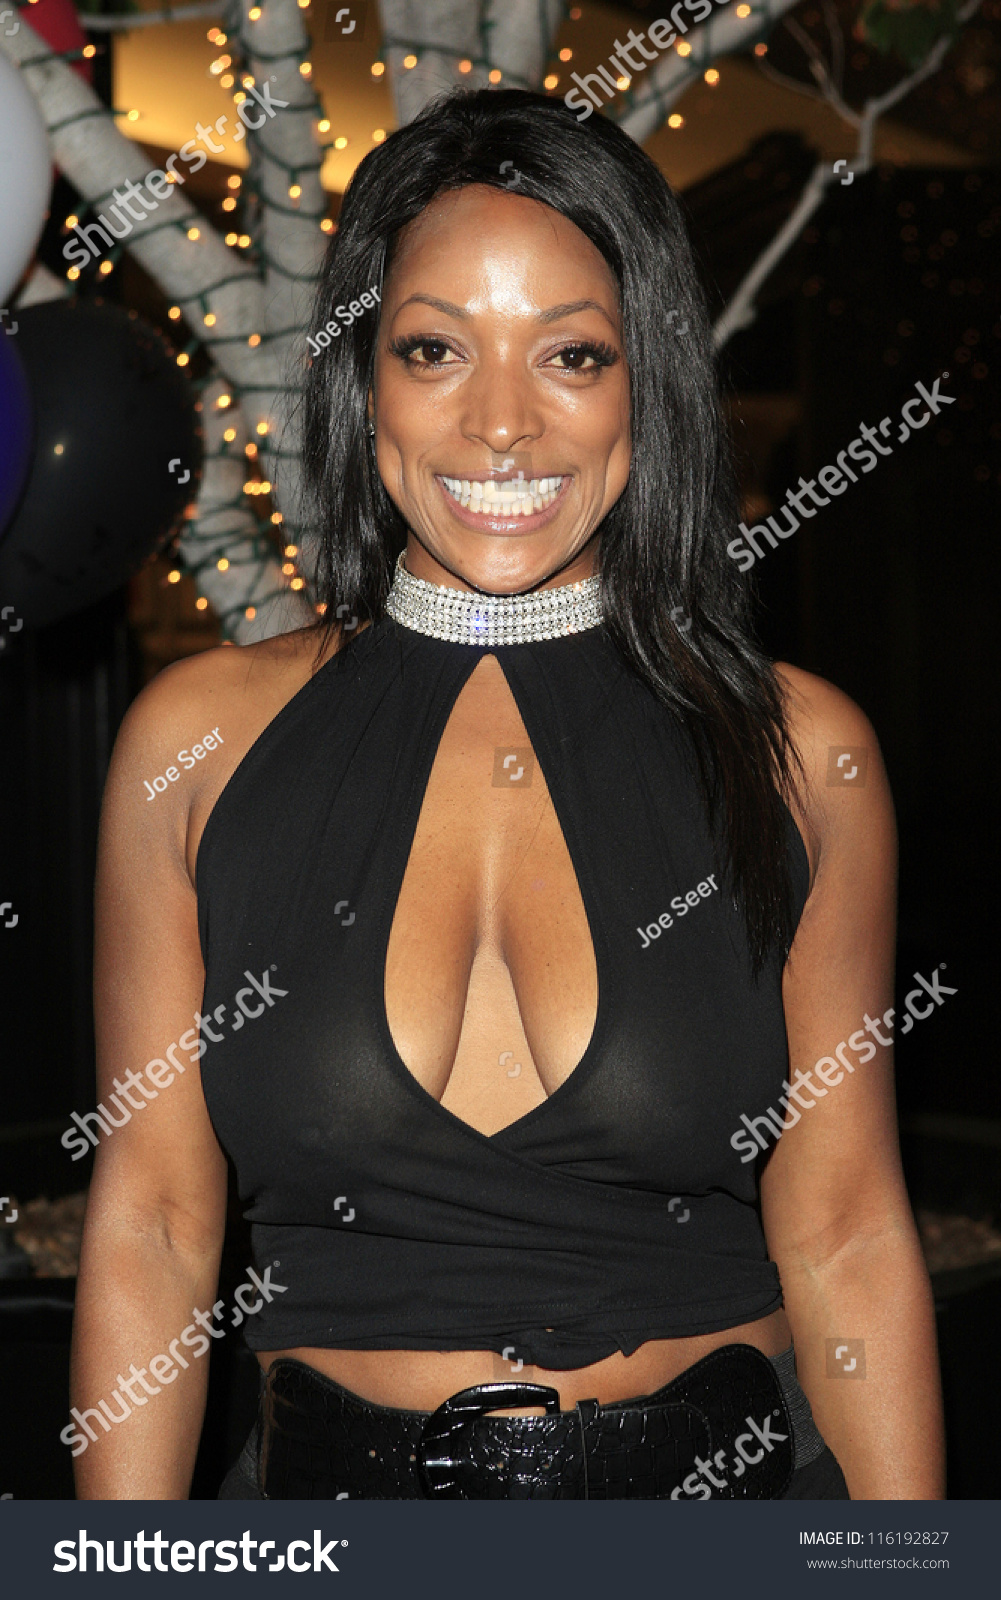 kellita smith marriedkellita smith фото, kellita smith height weight, kellita smith, kellita smith 2015, kellita smith instagram, kellita smith net worth, kellita smith married, kellita smith spouse